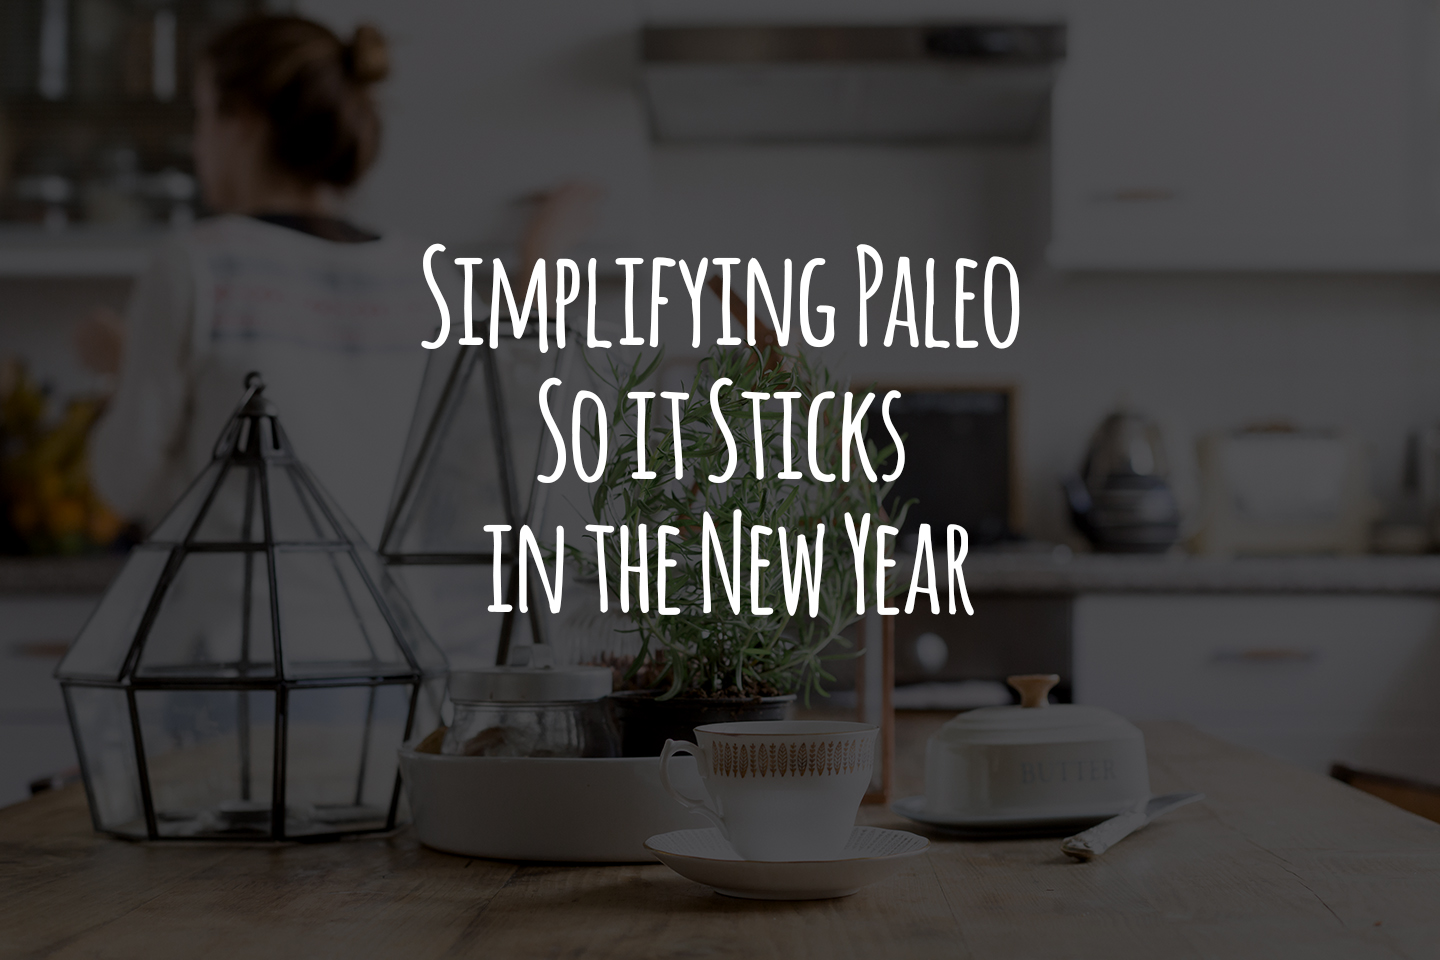 Simplifying Paleo So it Sticks in the New Year